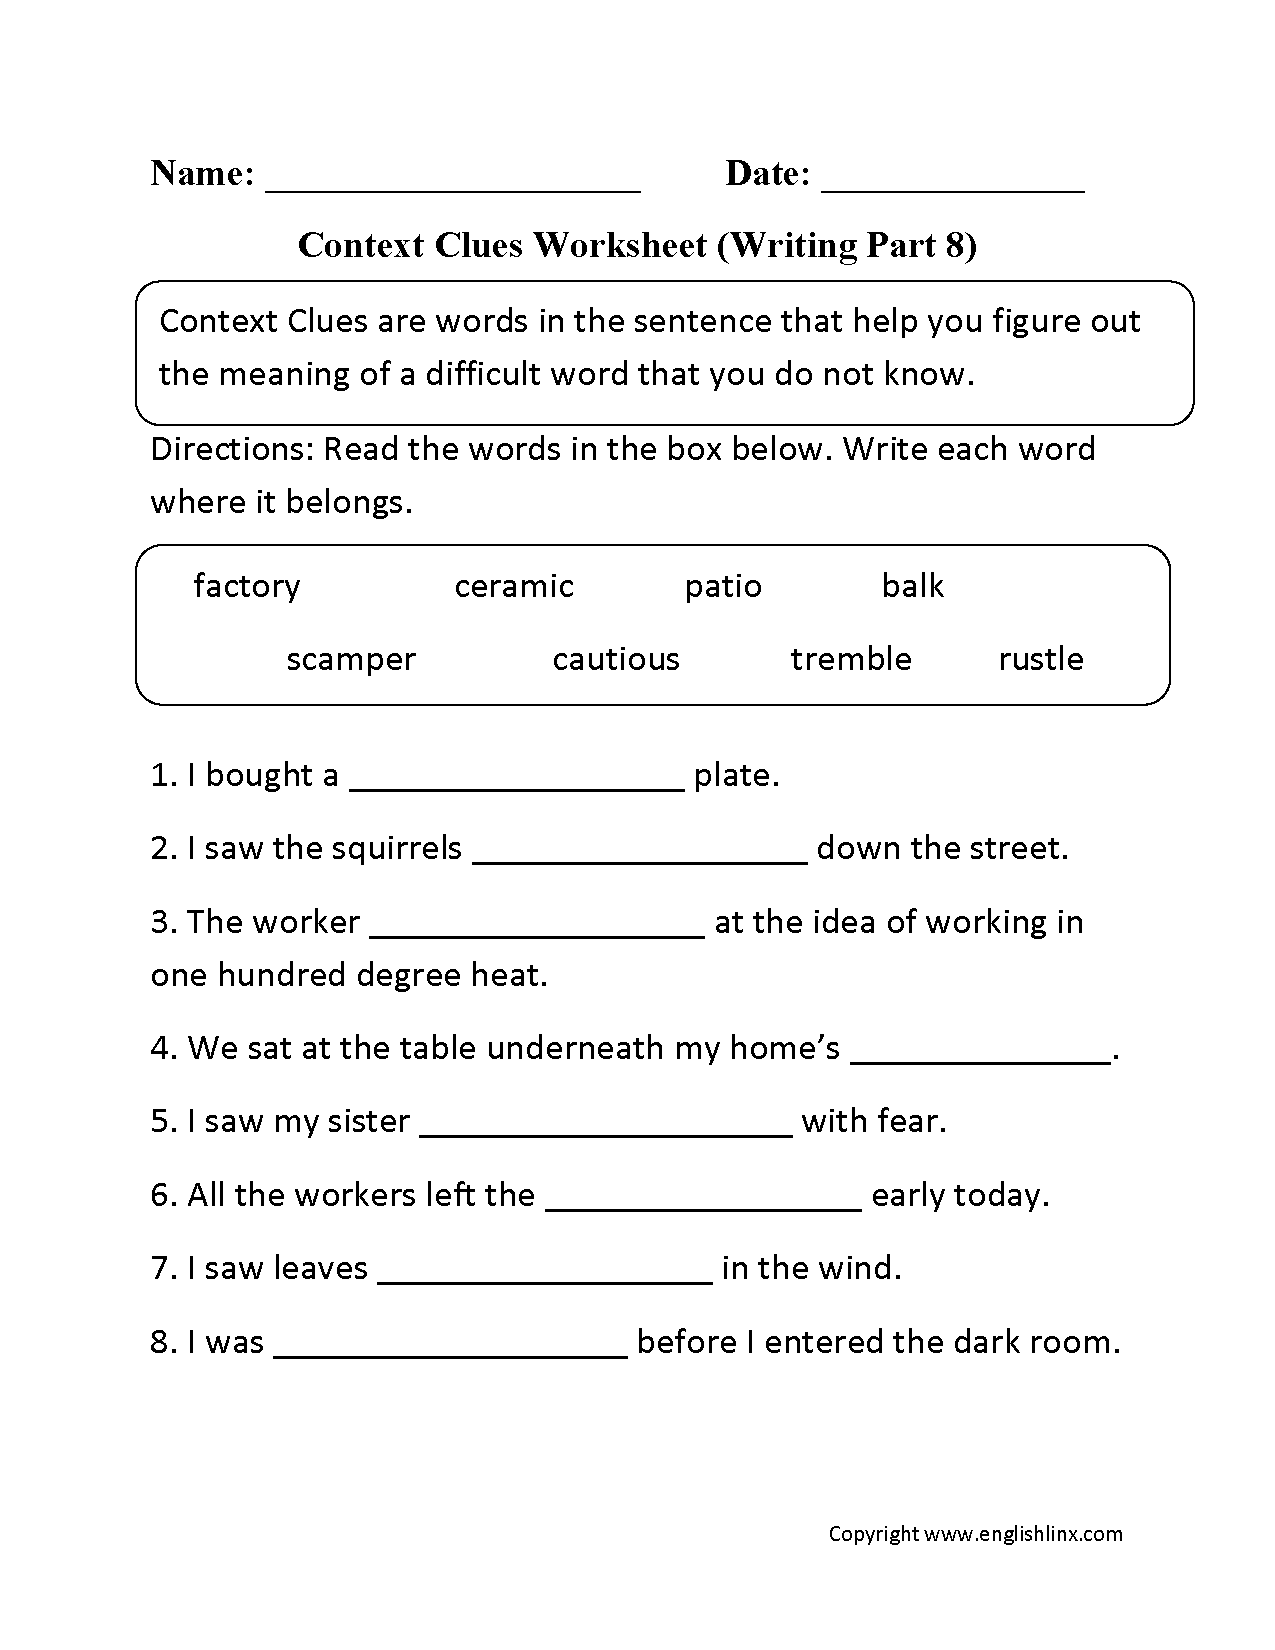 Context Clues Worksheet Writing Part 8 Intermediate